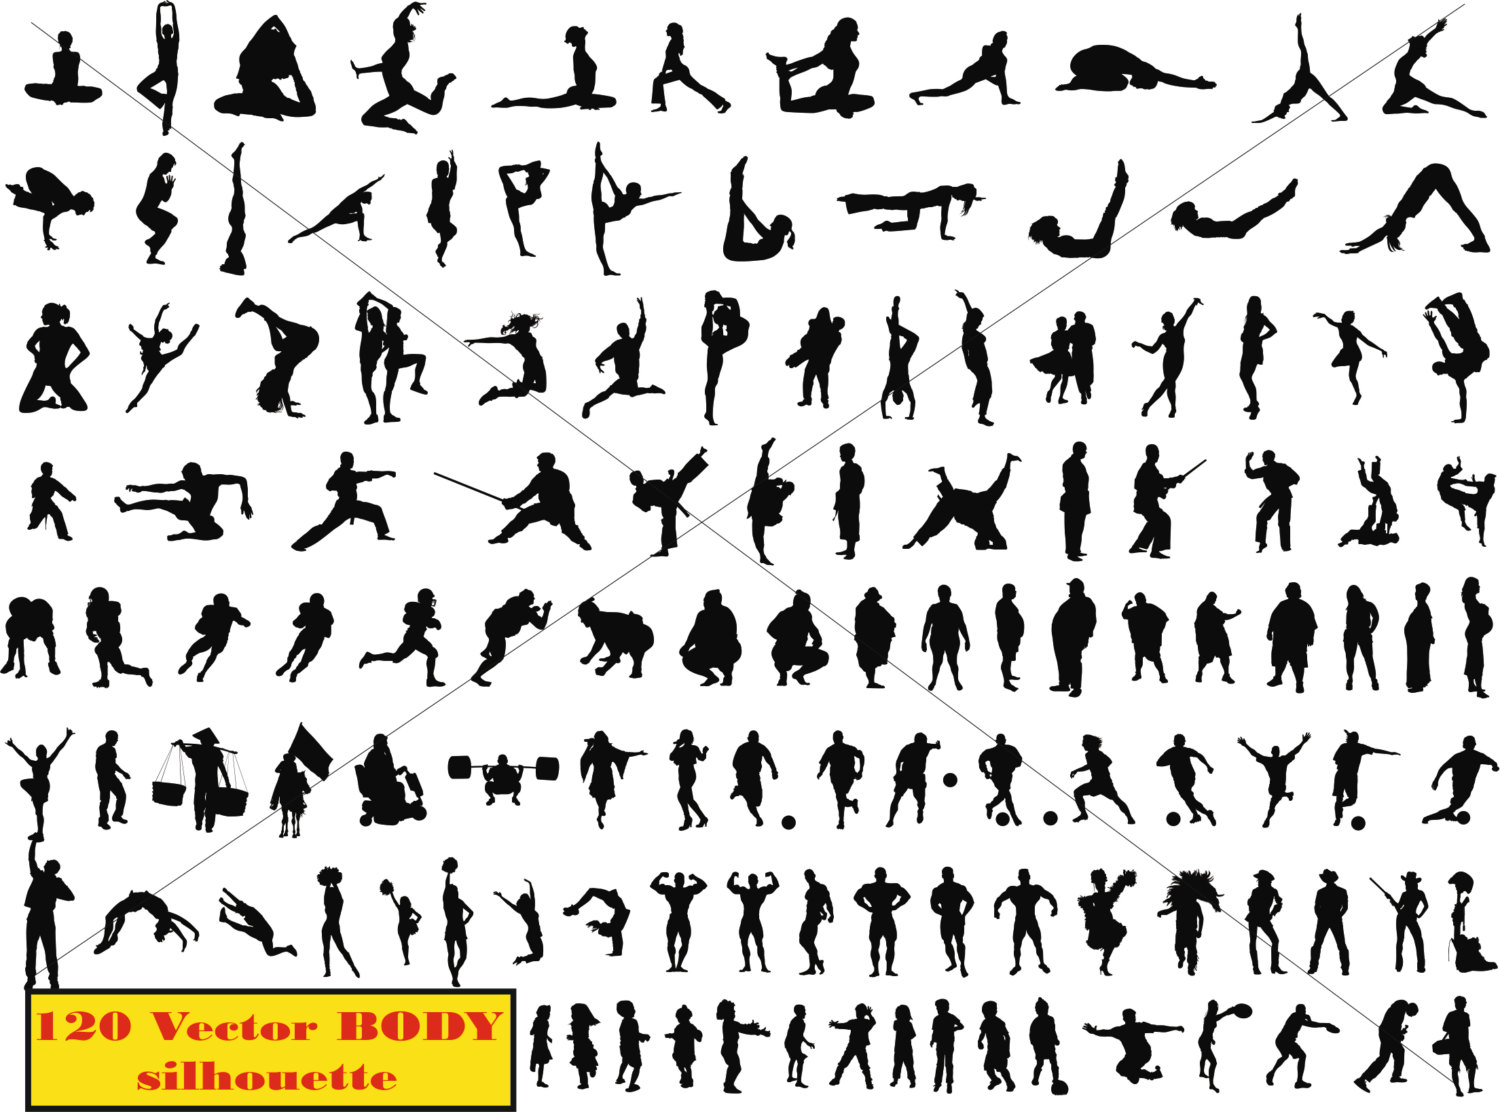 Body Art clipart #7, Download drawings